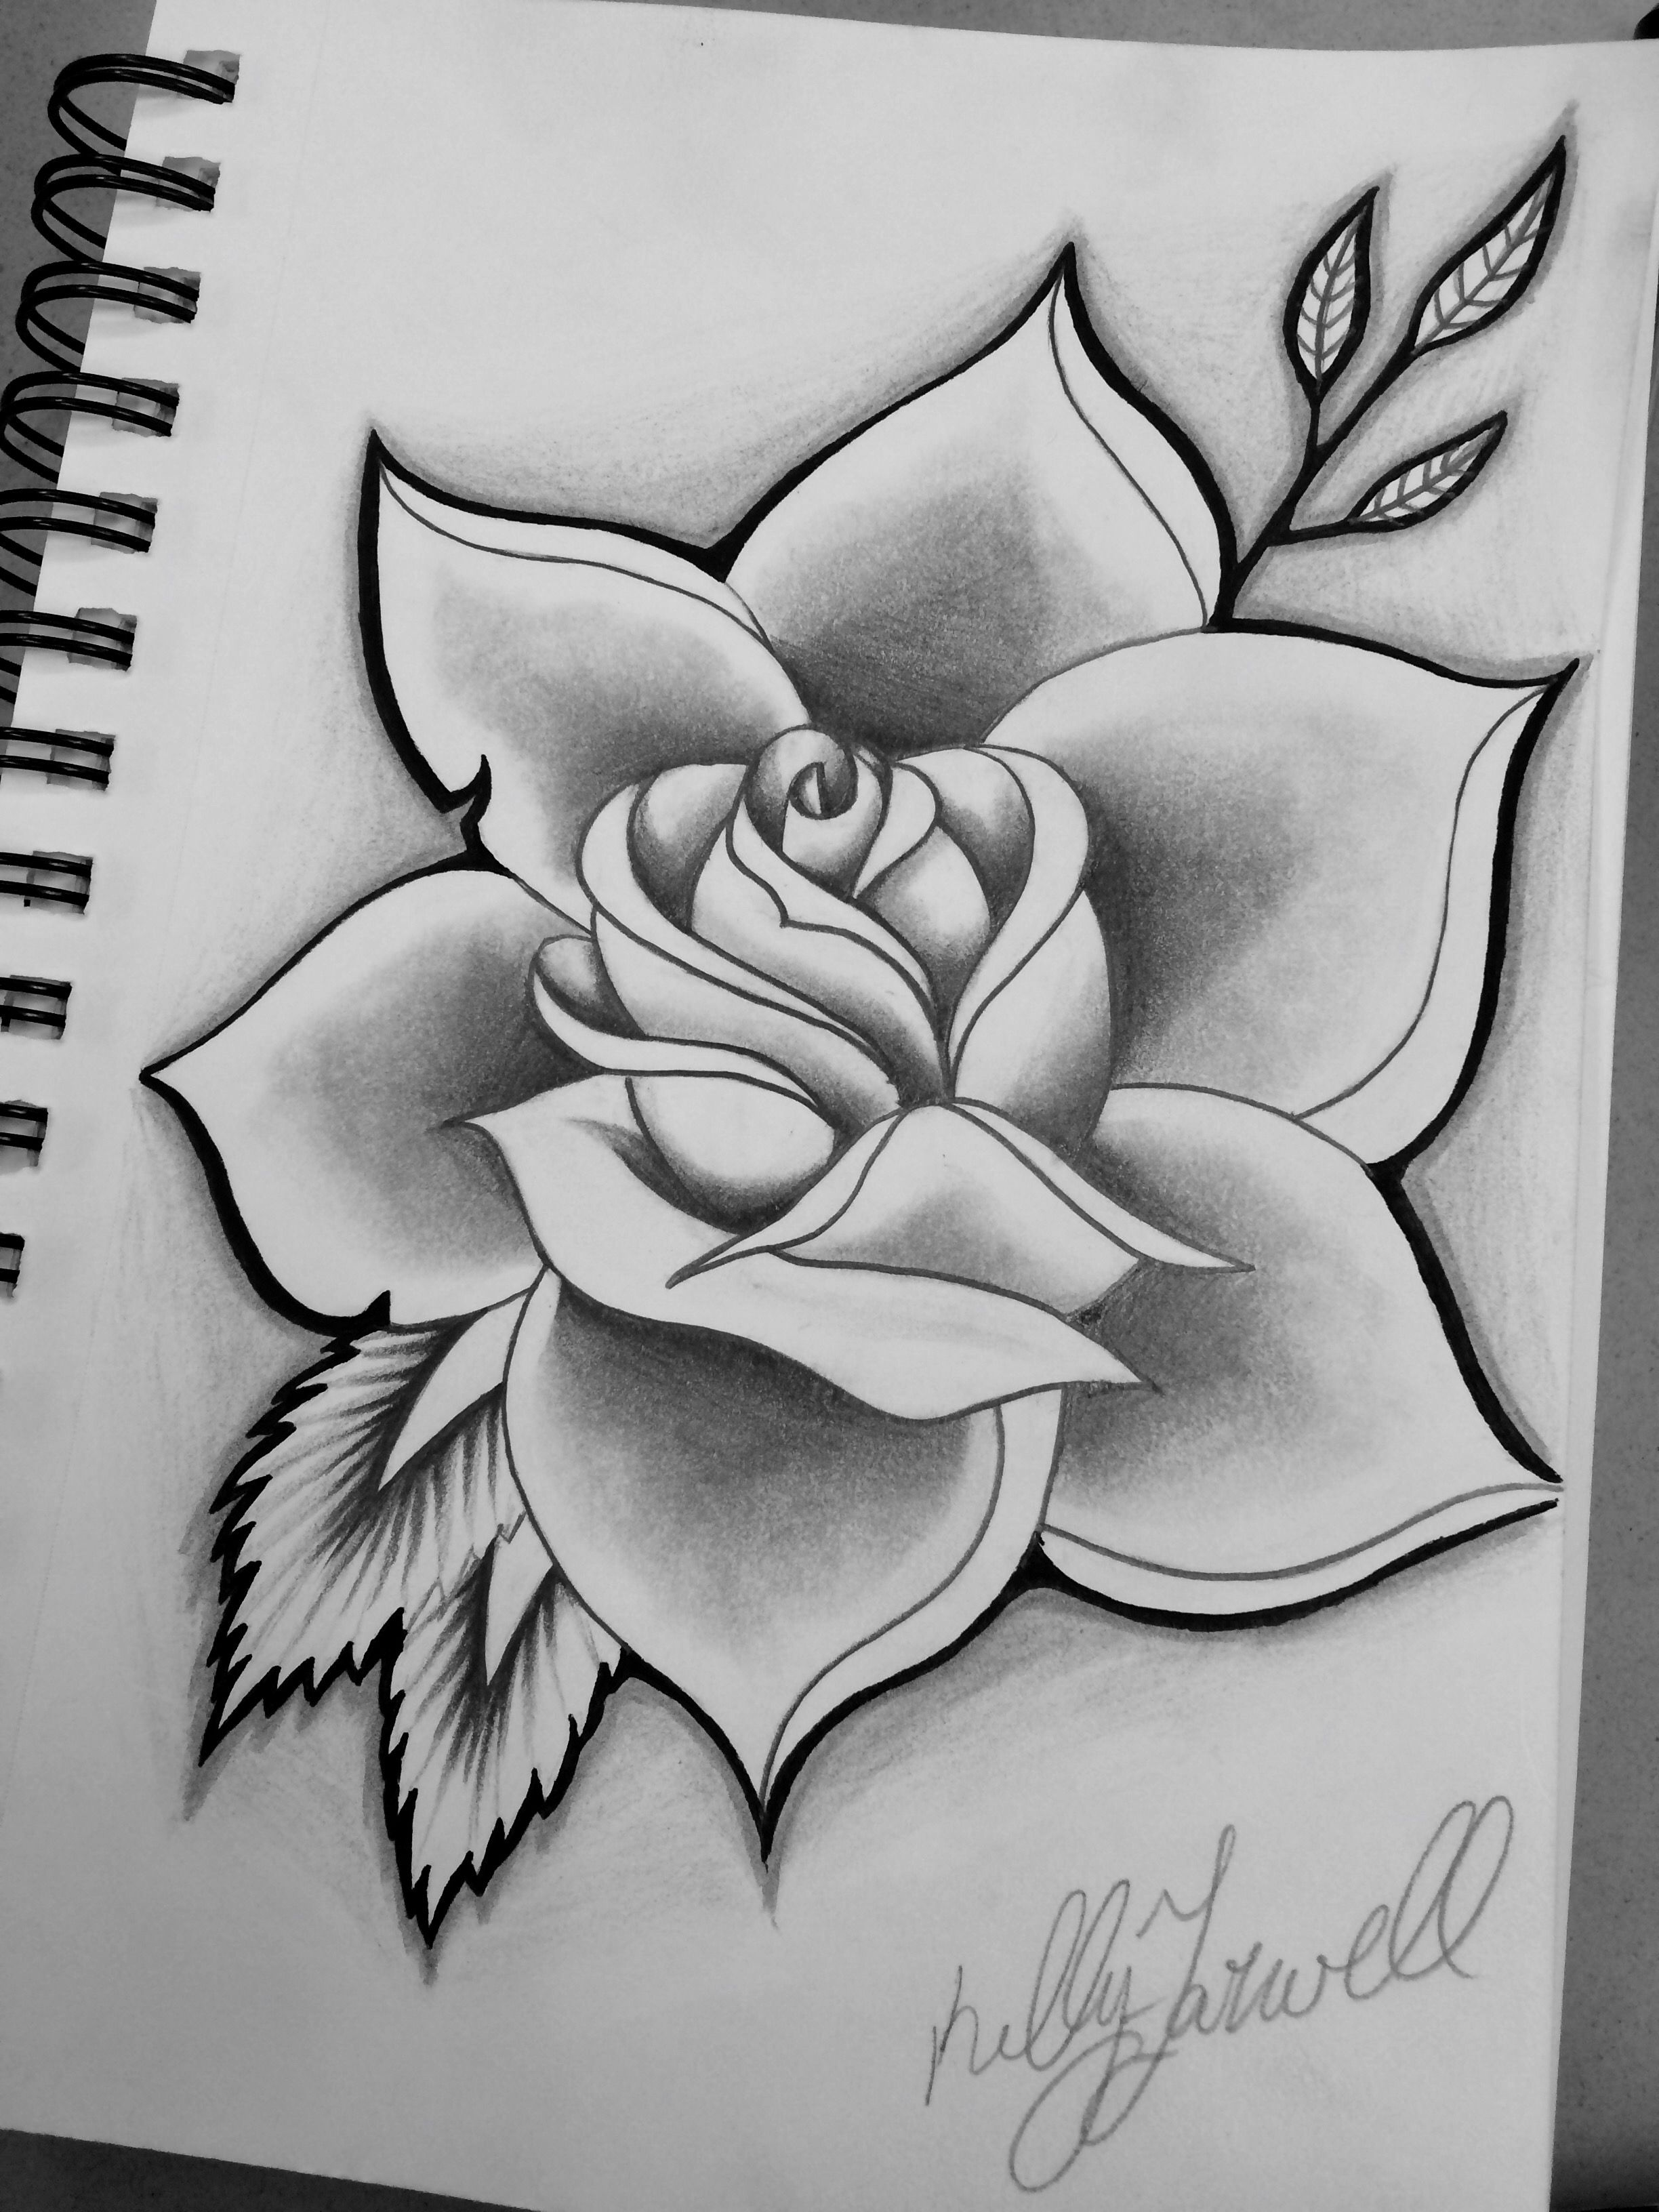 Flower sketches drawing sketches drawing tips easy drawings amazing drawings tattoo